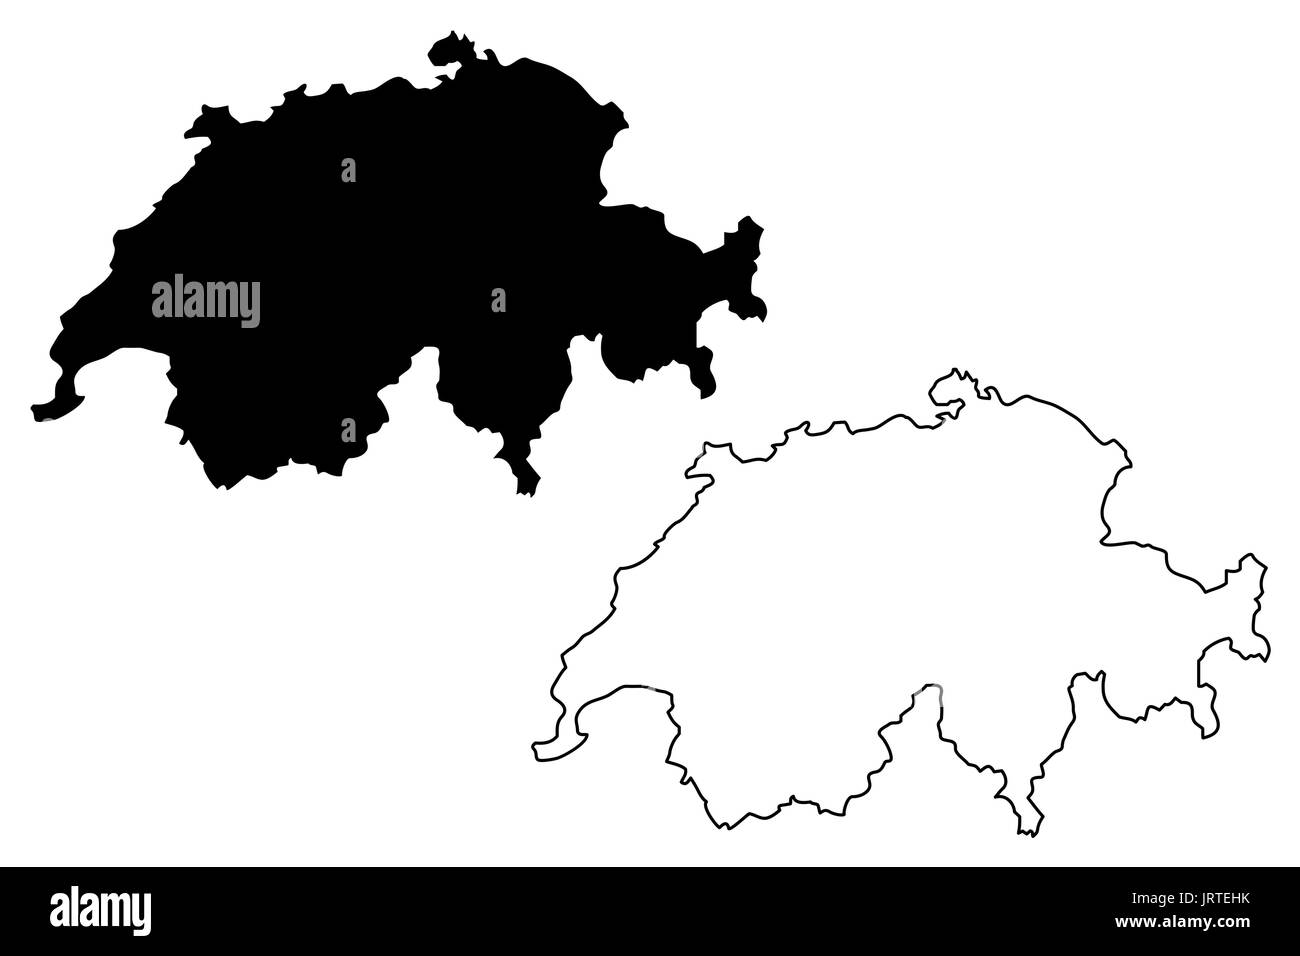 Switzerland map vector illustration, scribble sketch Switzerland - Stock Vector